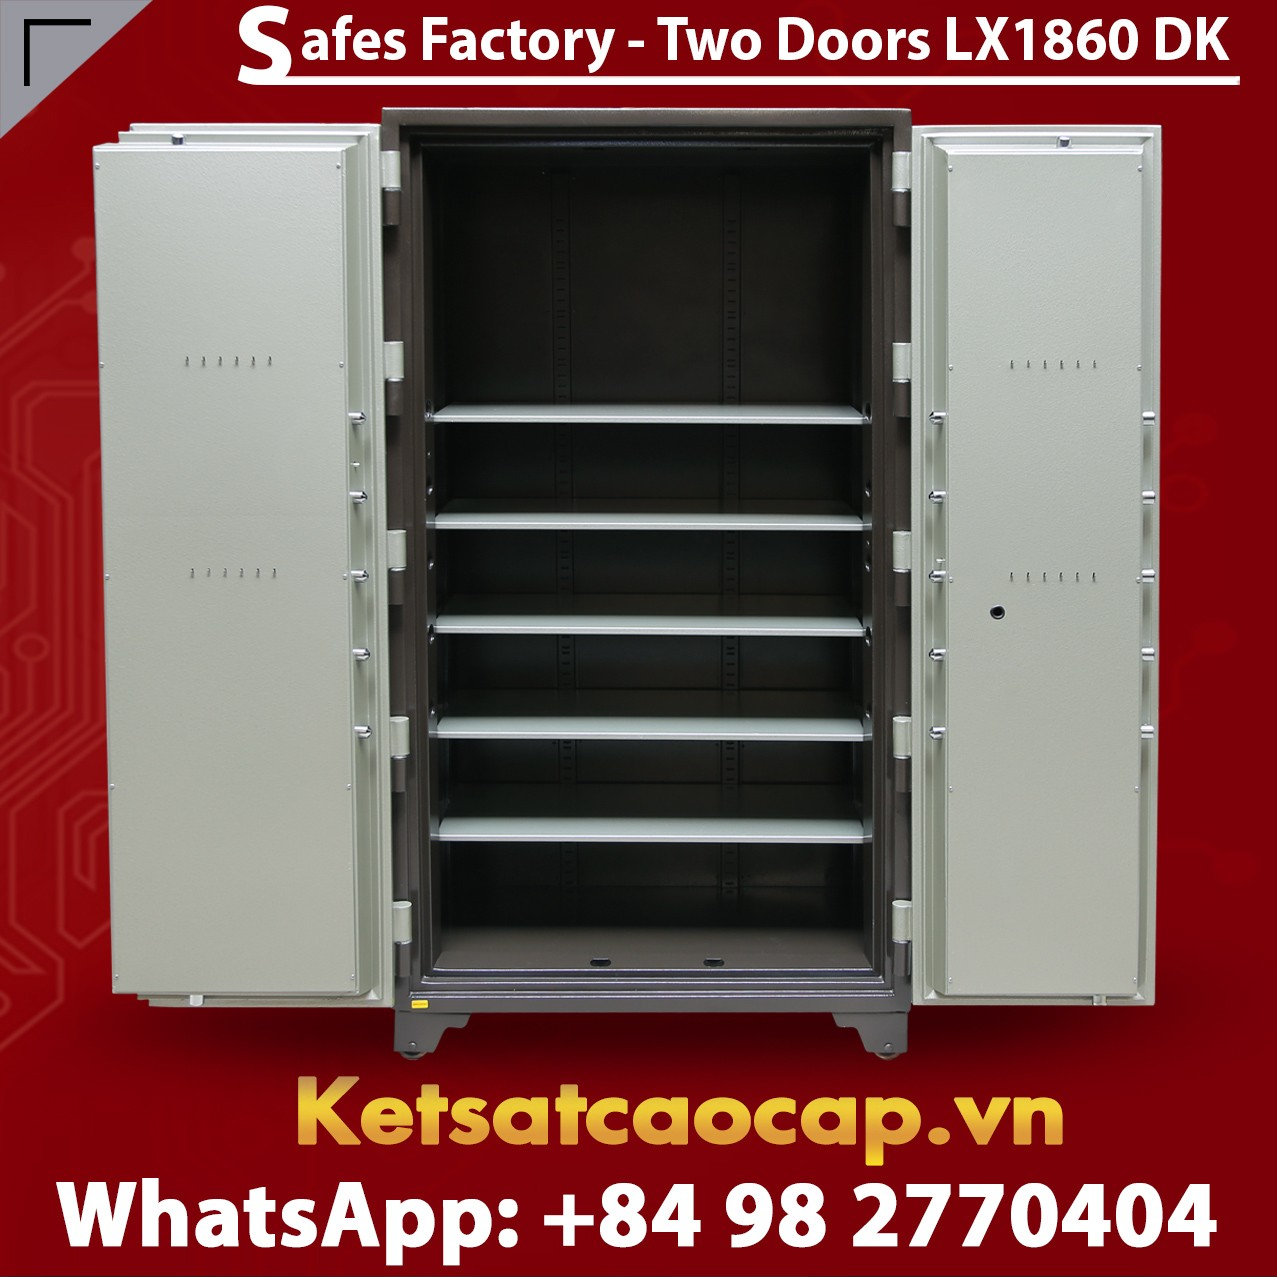 Bank Safes LX 1860 DK Two Door Smart Locking System Security